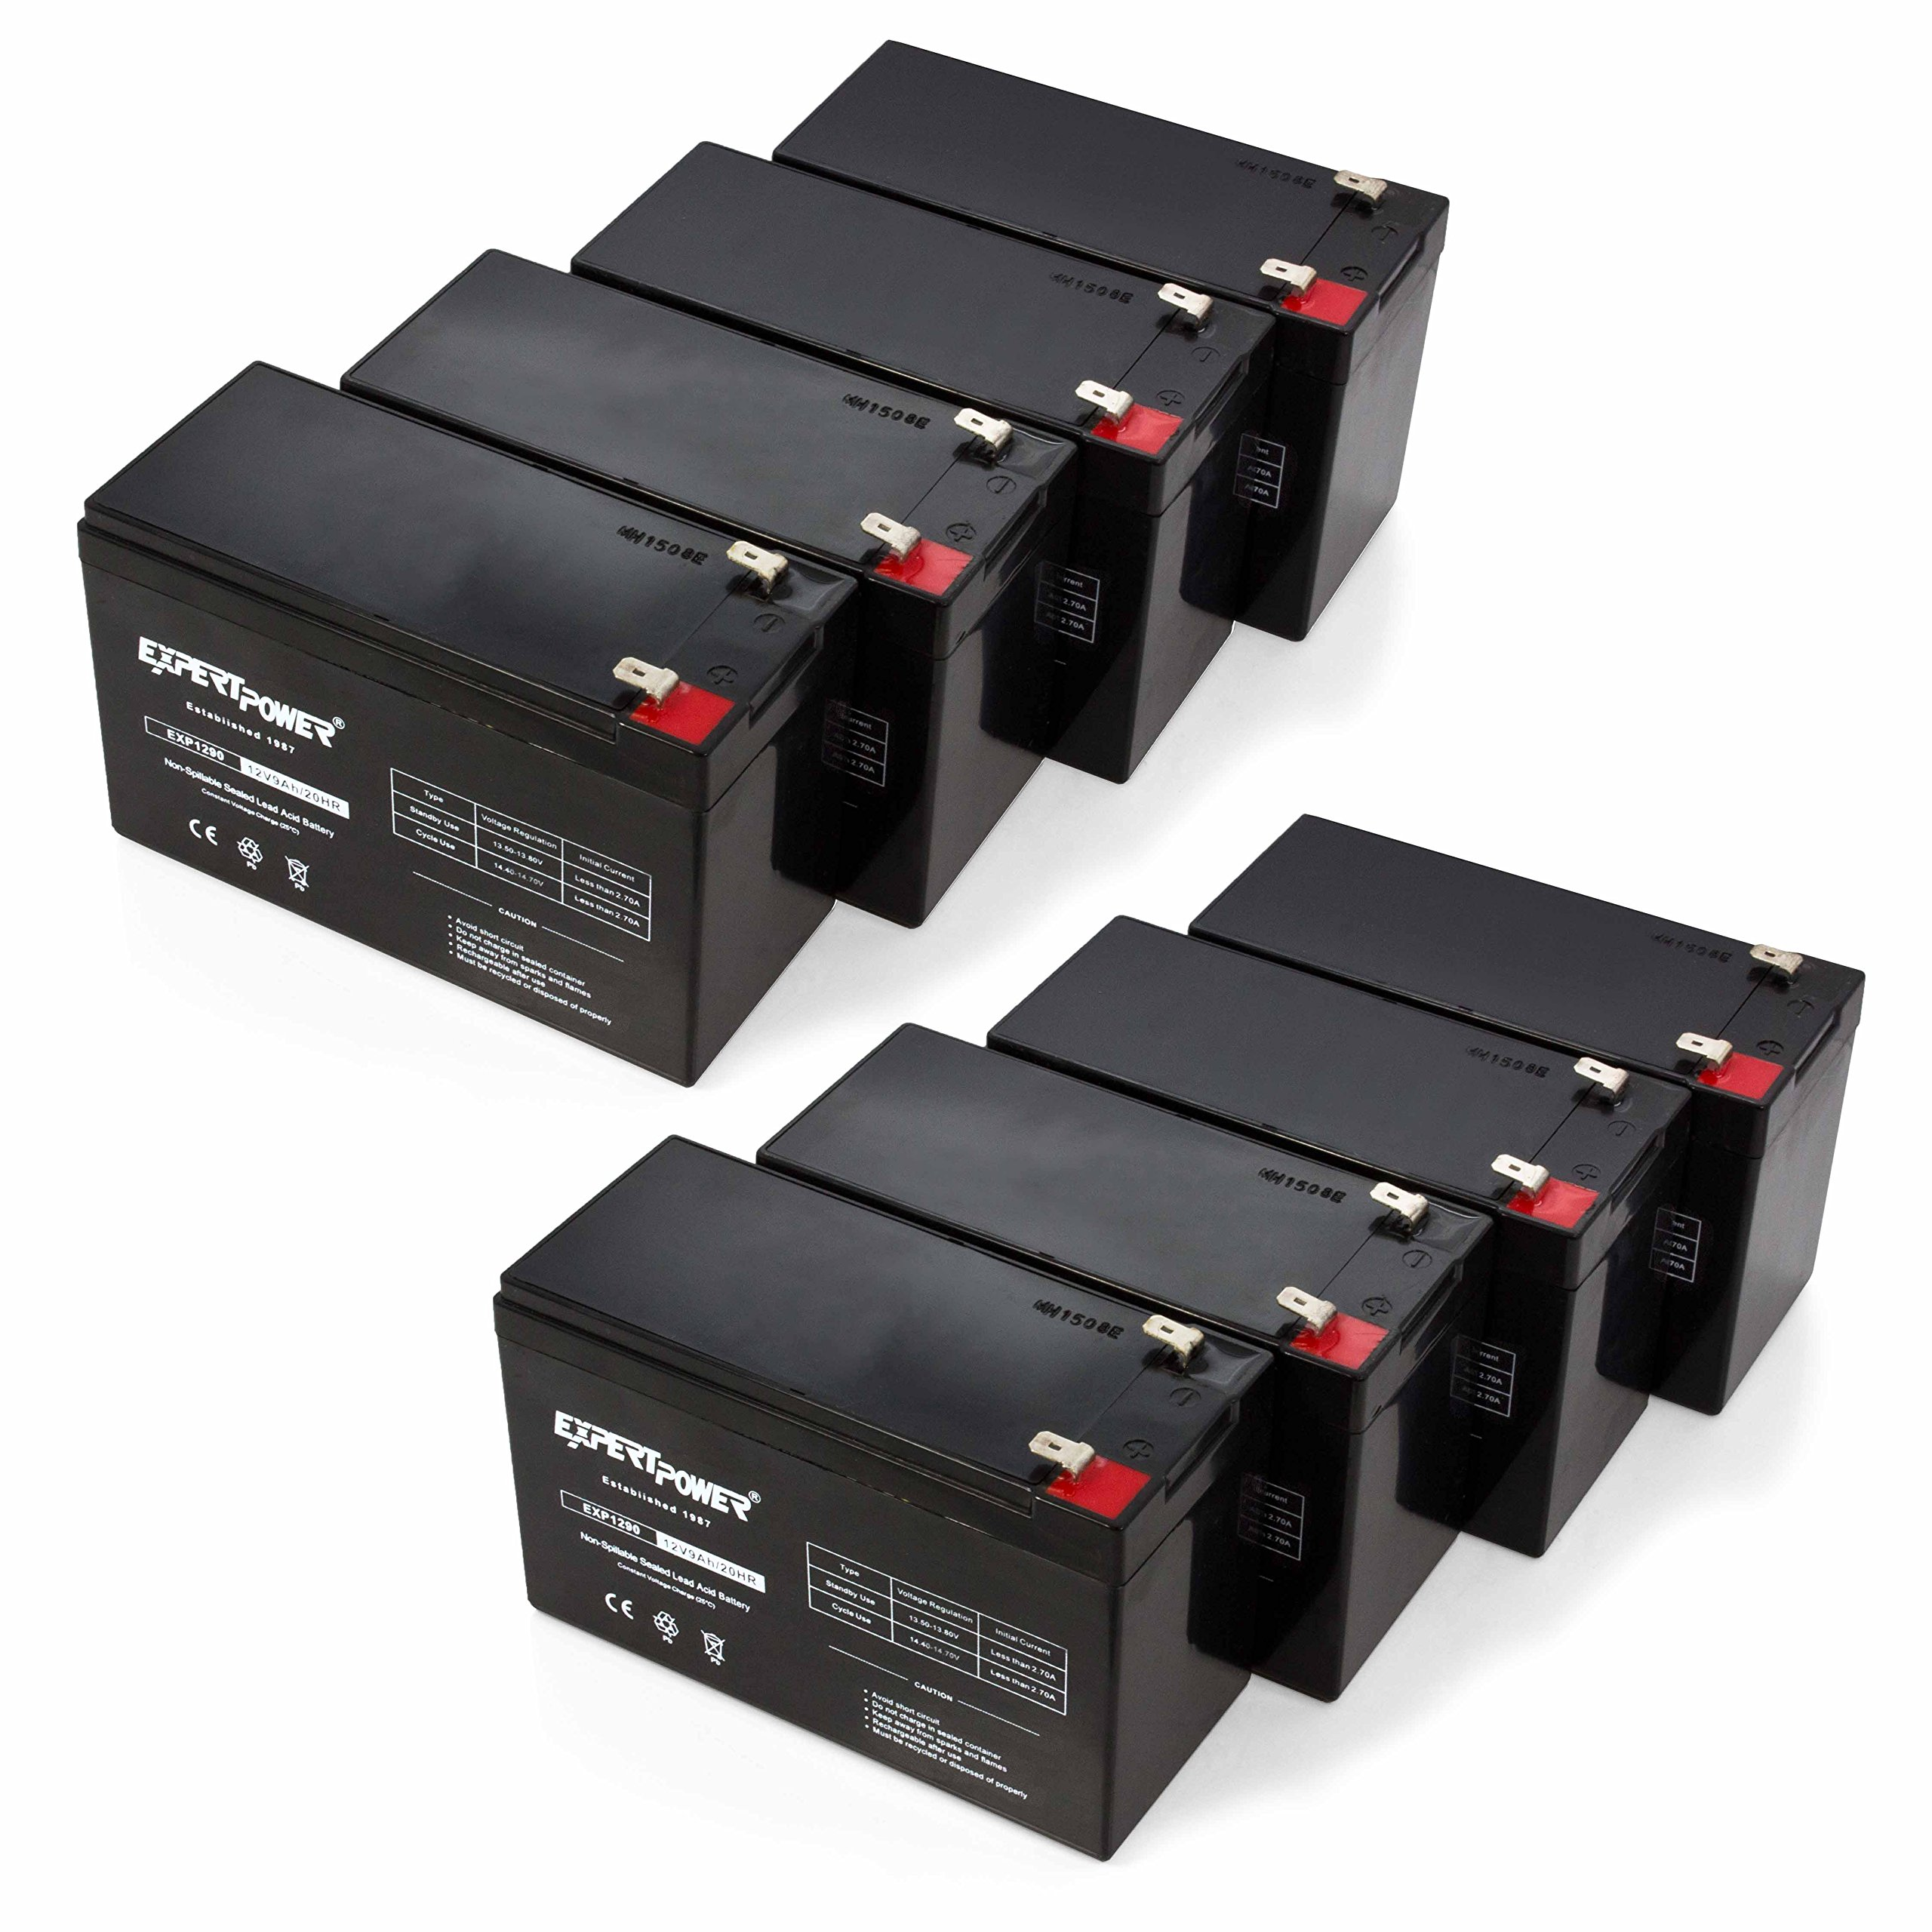 ExpertPower 12v 9ah Sealed Lead Acid Battery with F2 Terminals (.250'') / 8 Pack by ExpertPower